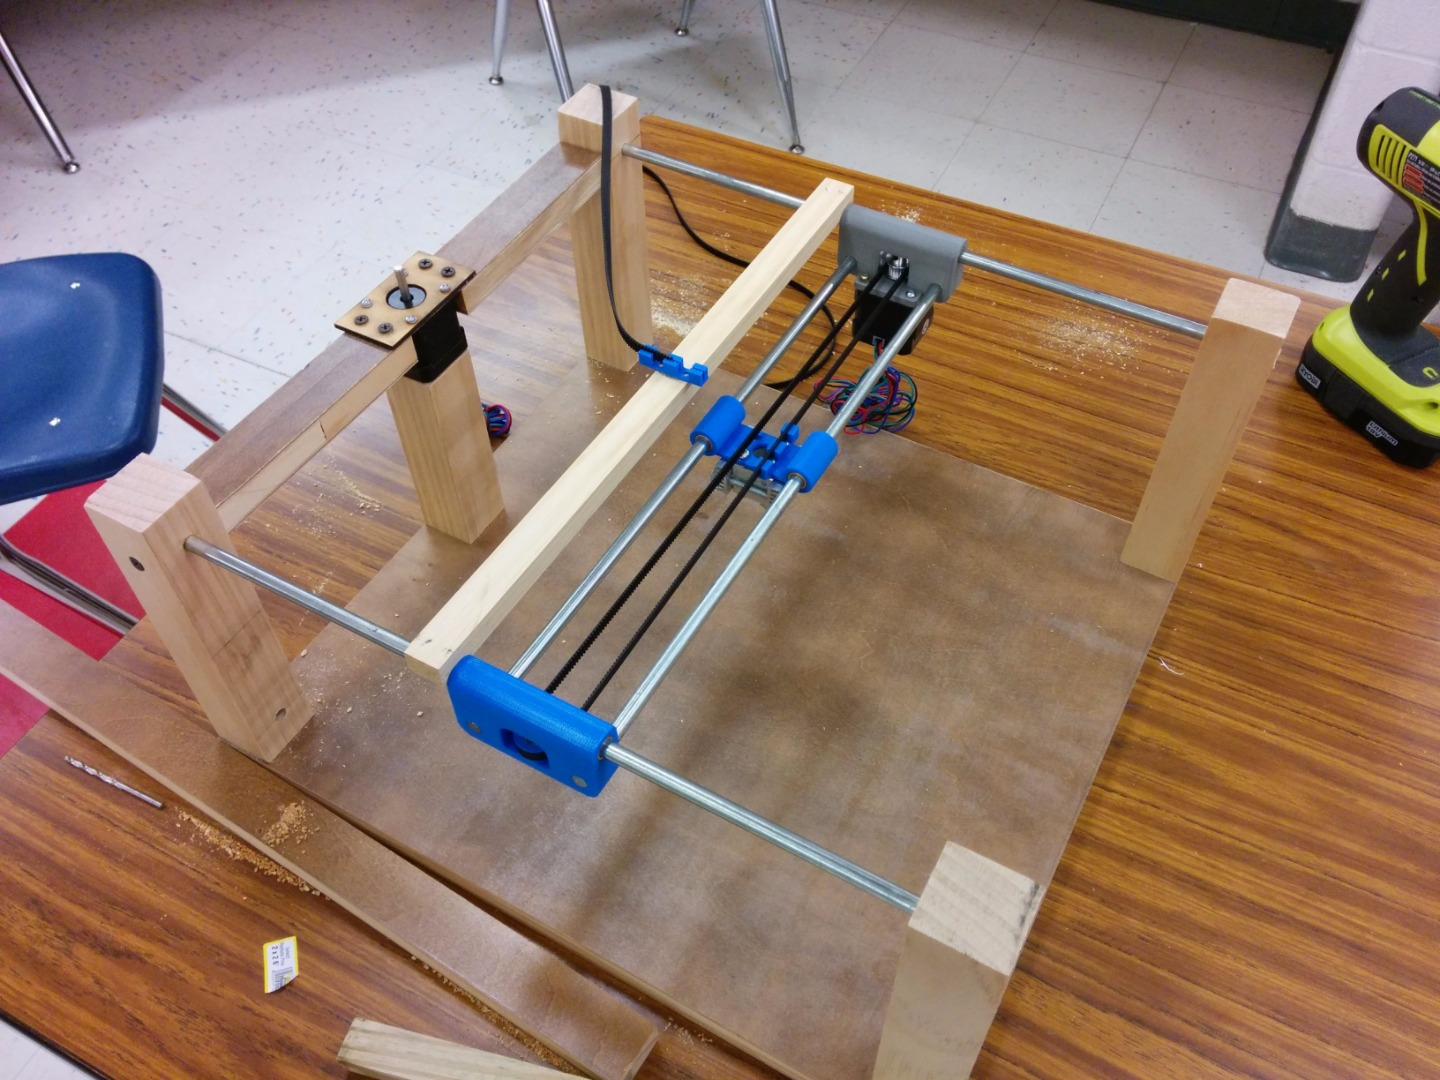 Picture of Constructing the Frame and X-Axis